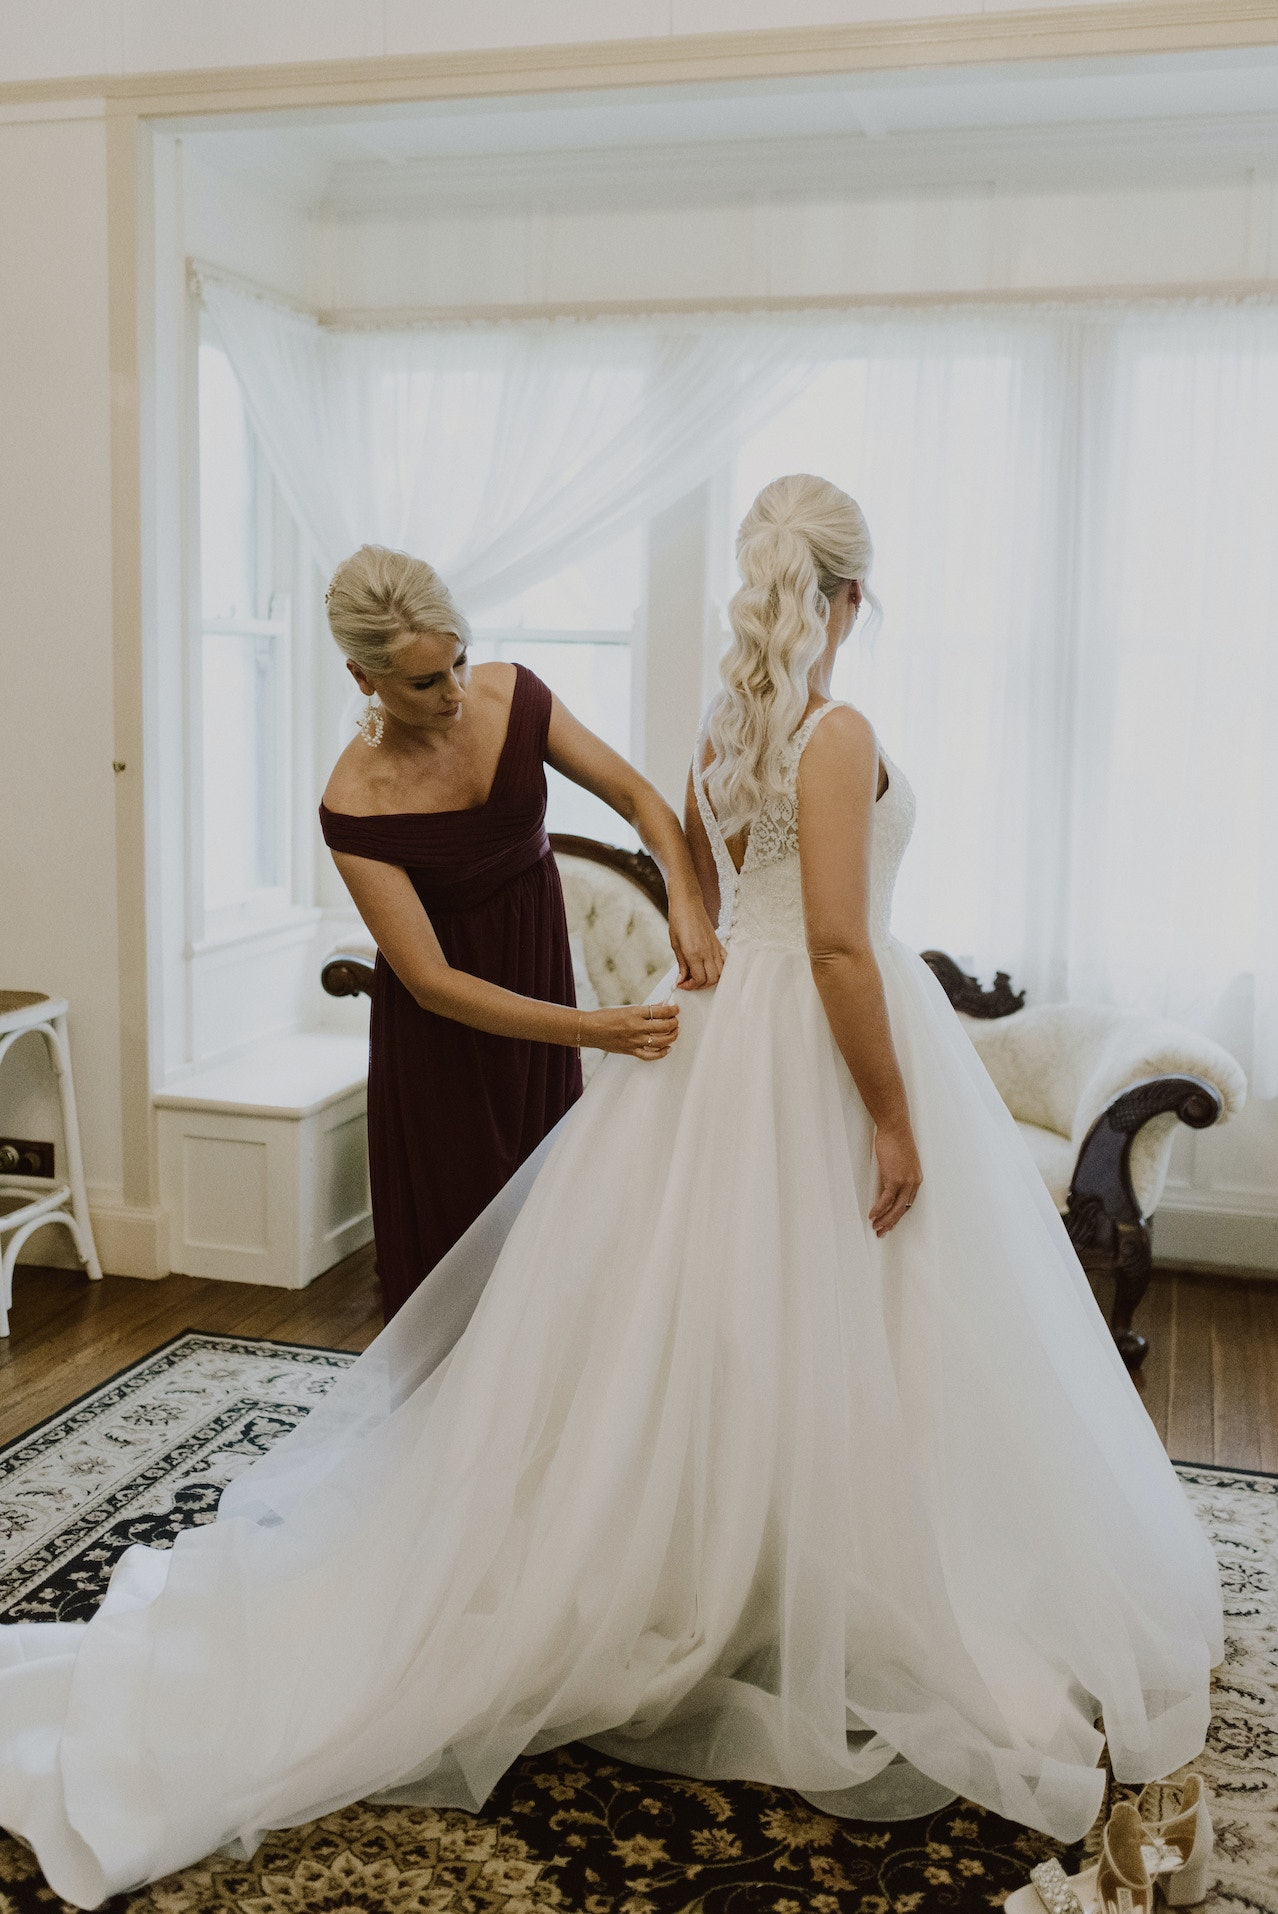 Bride getting dress buttoned up